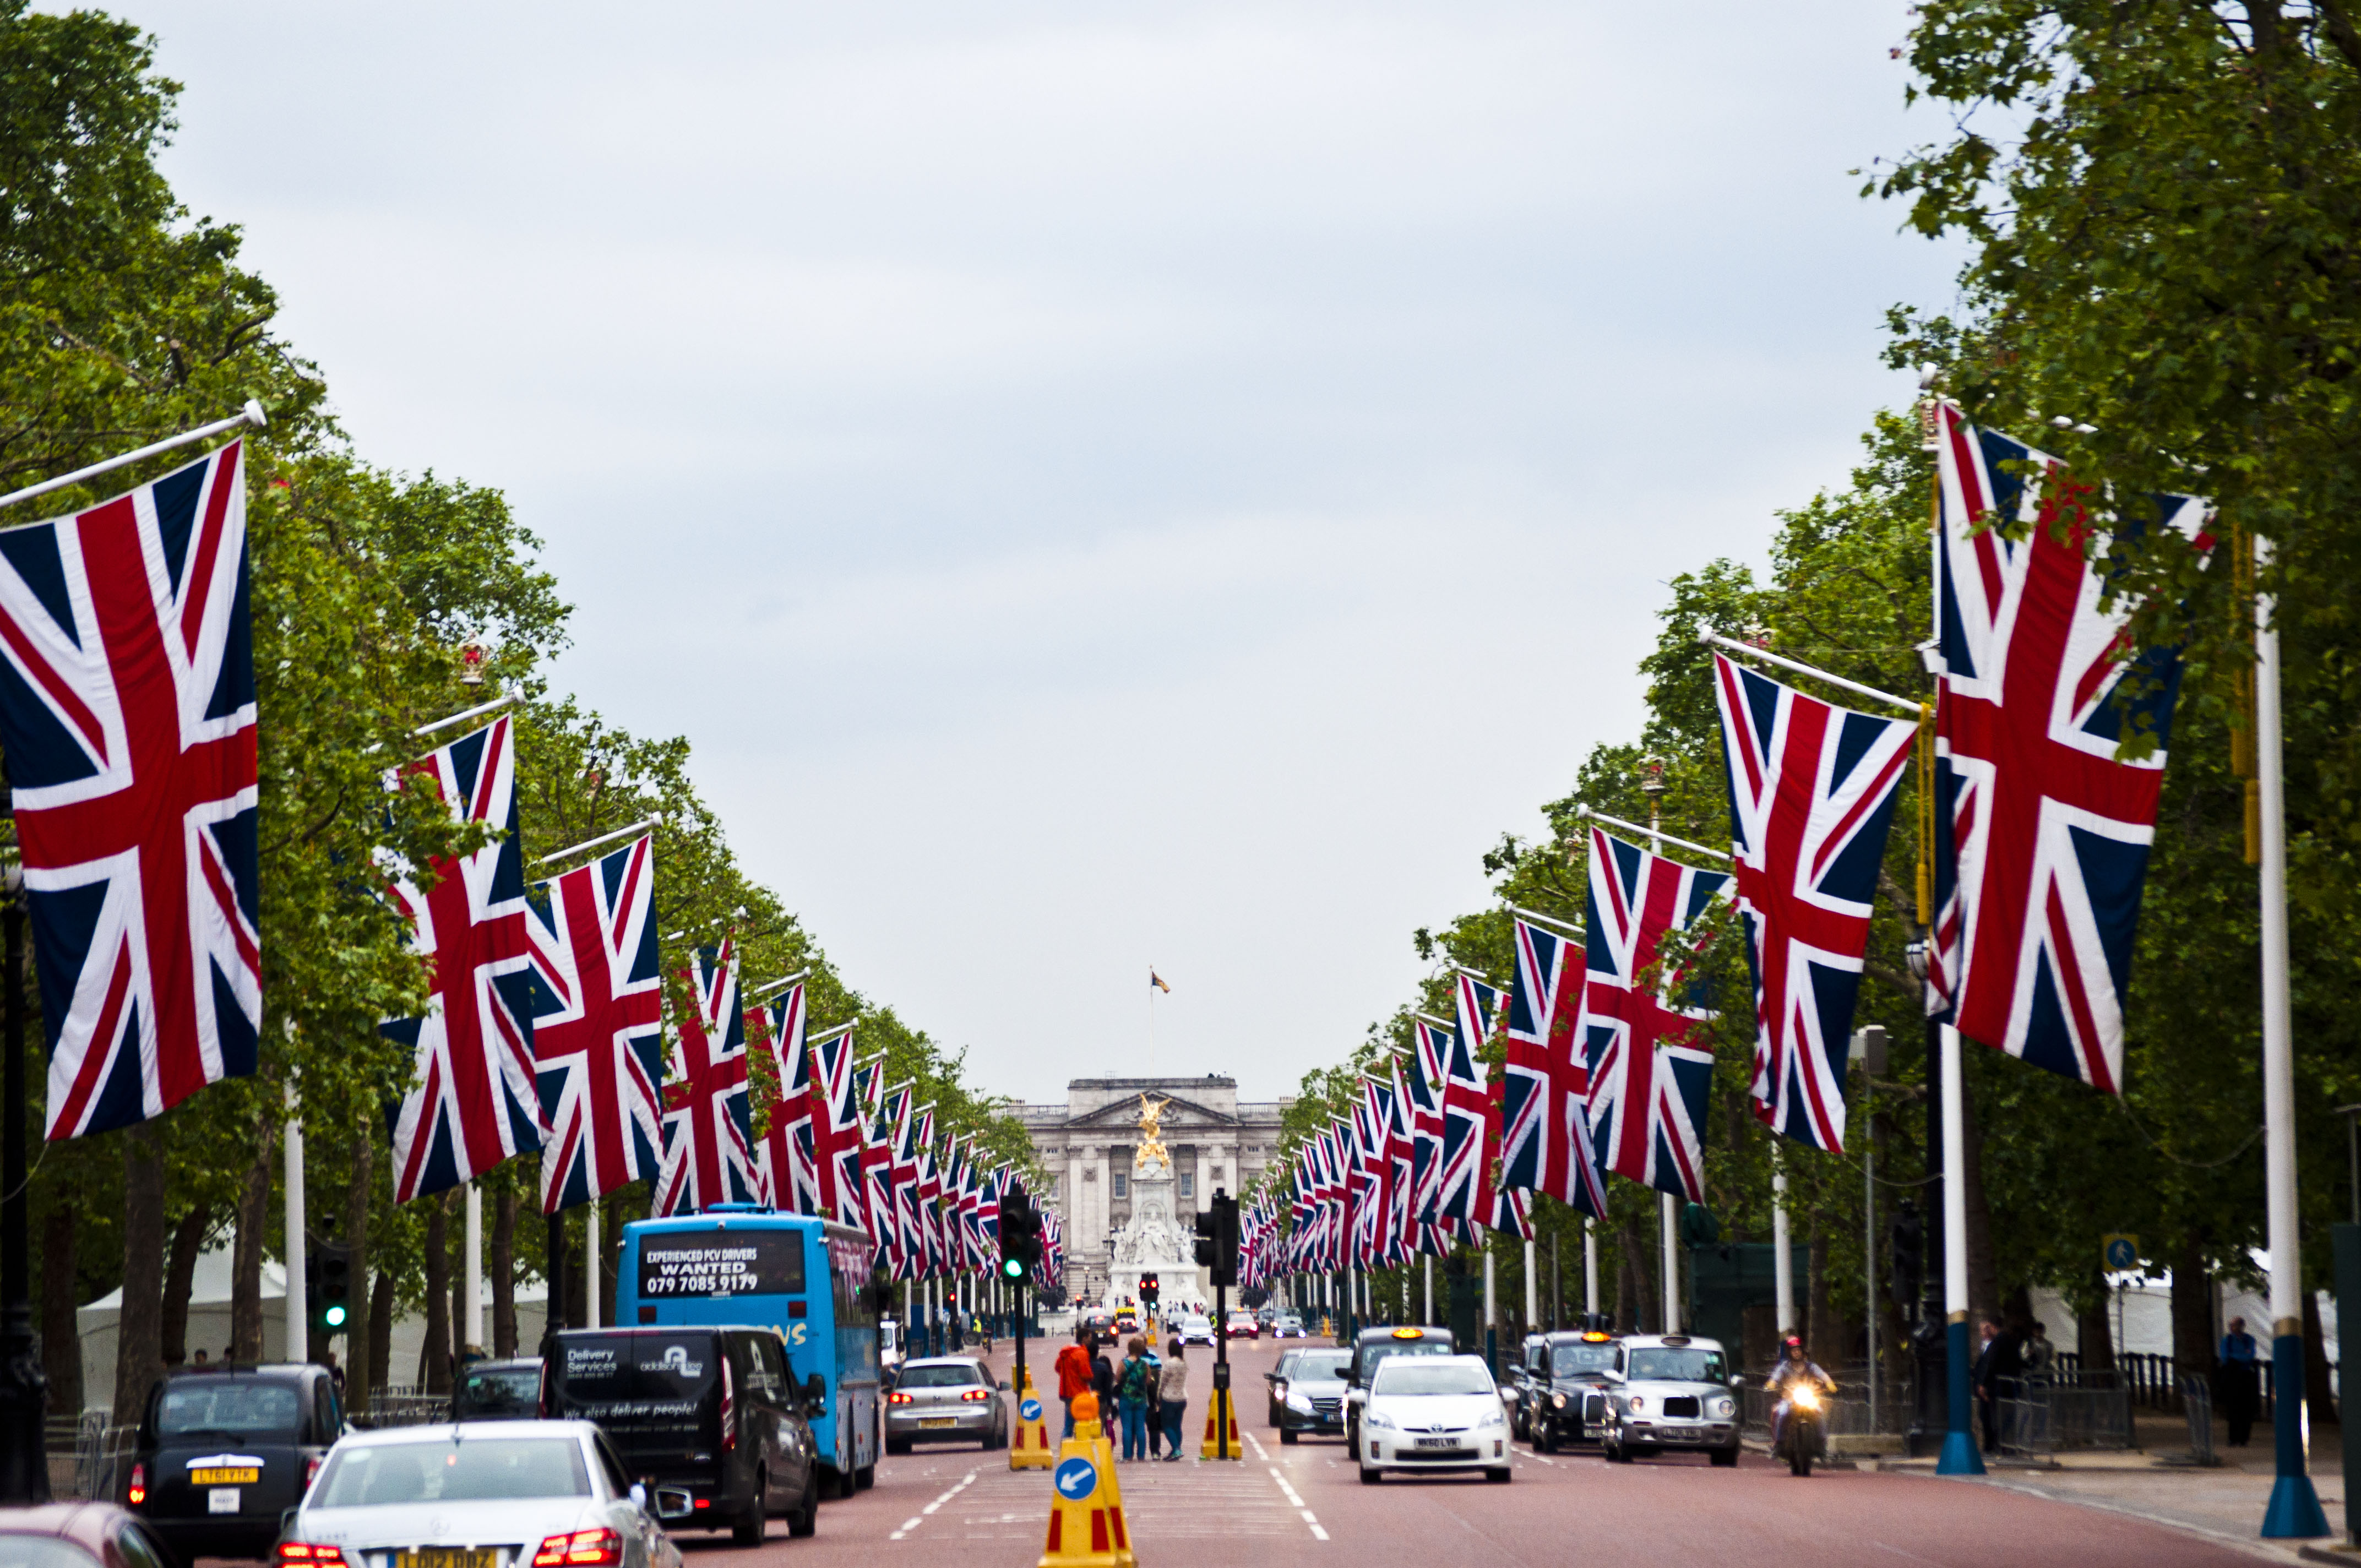 London Street leading to Buckingham Palace with British flags and trees lining the sides of the road